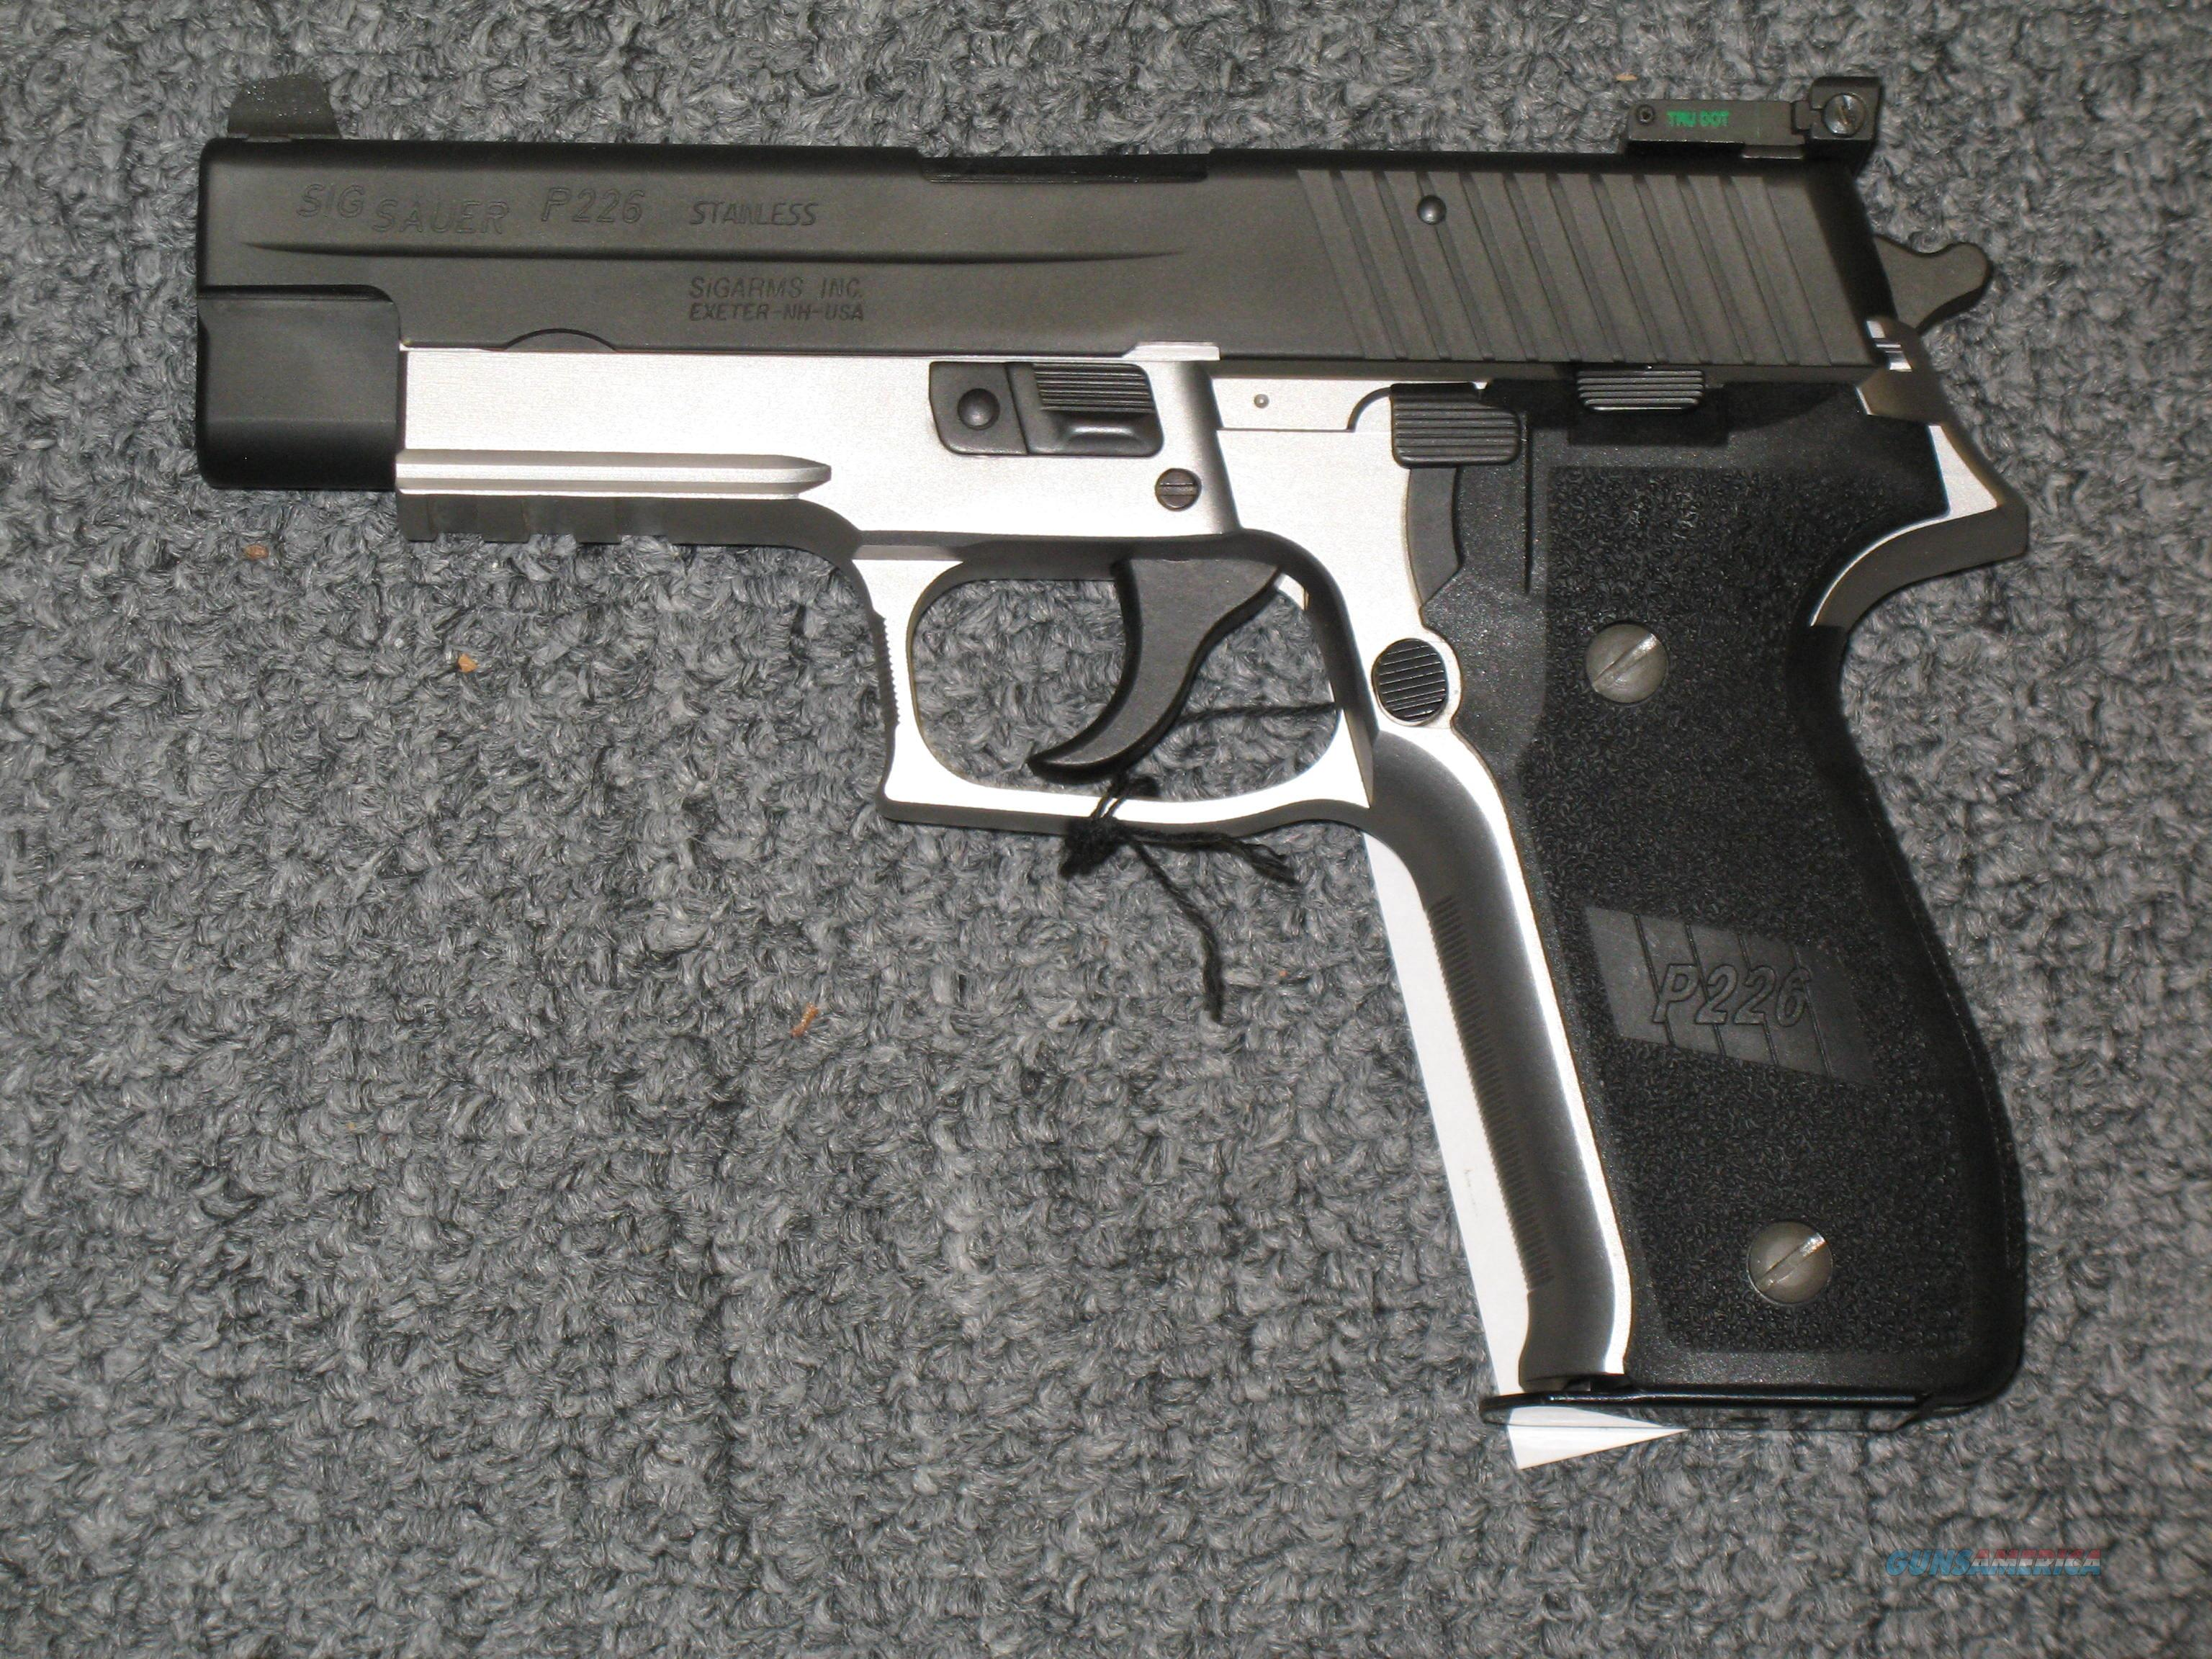 P226 Two Tone .357sig with Night Sights  Guns > Pistols > Sig - Sauer/Sigarms Pistols > P226